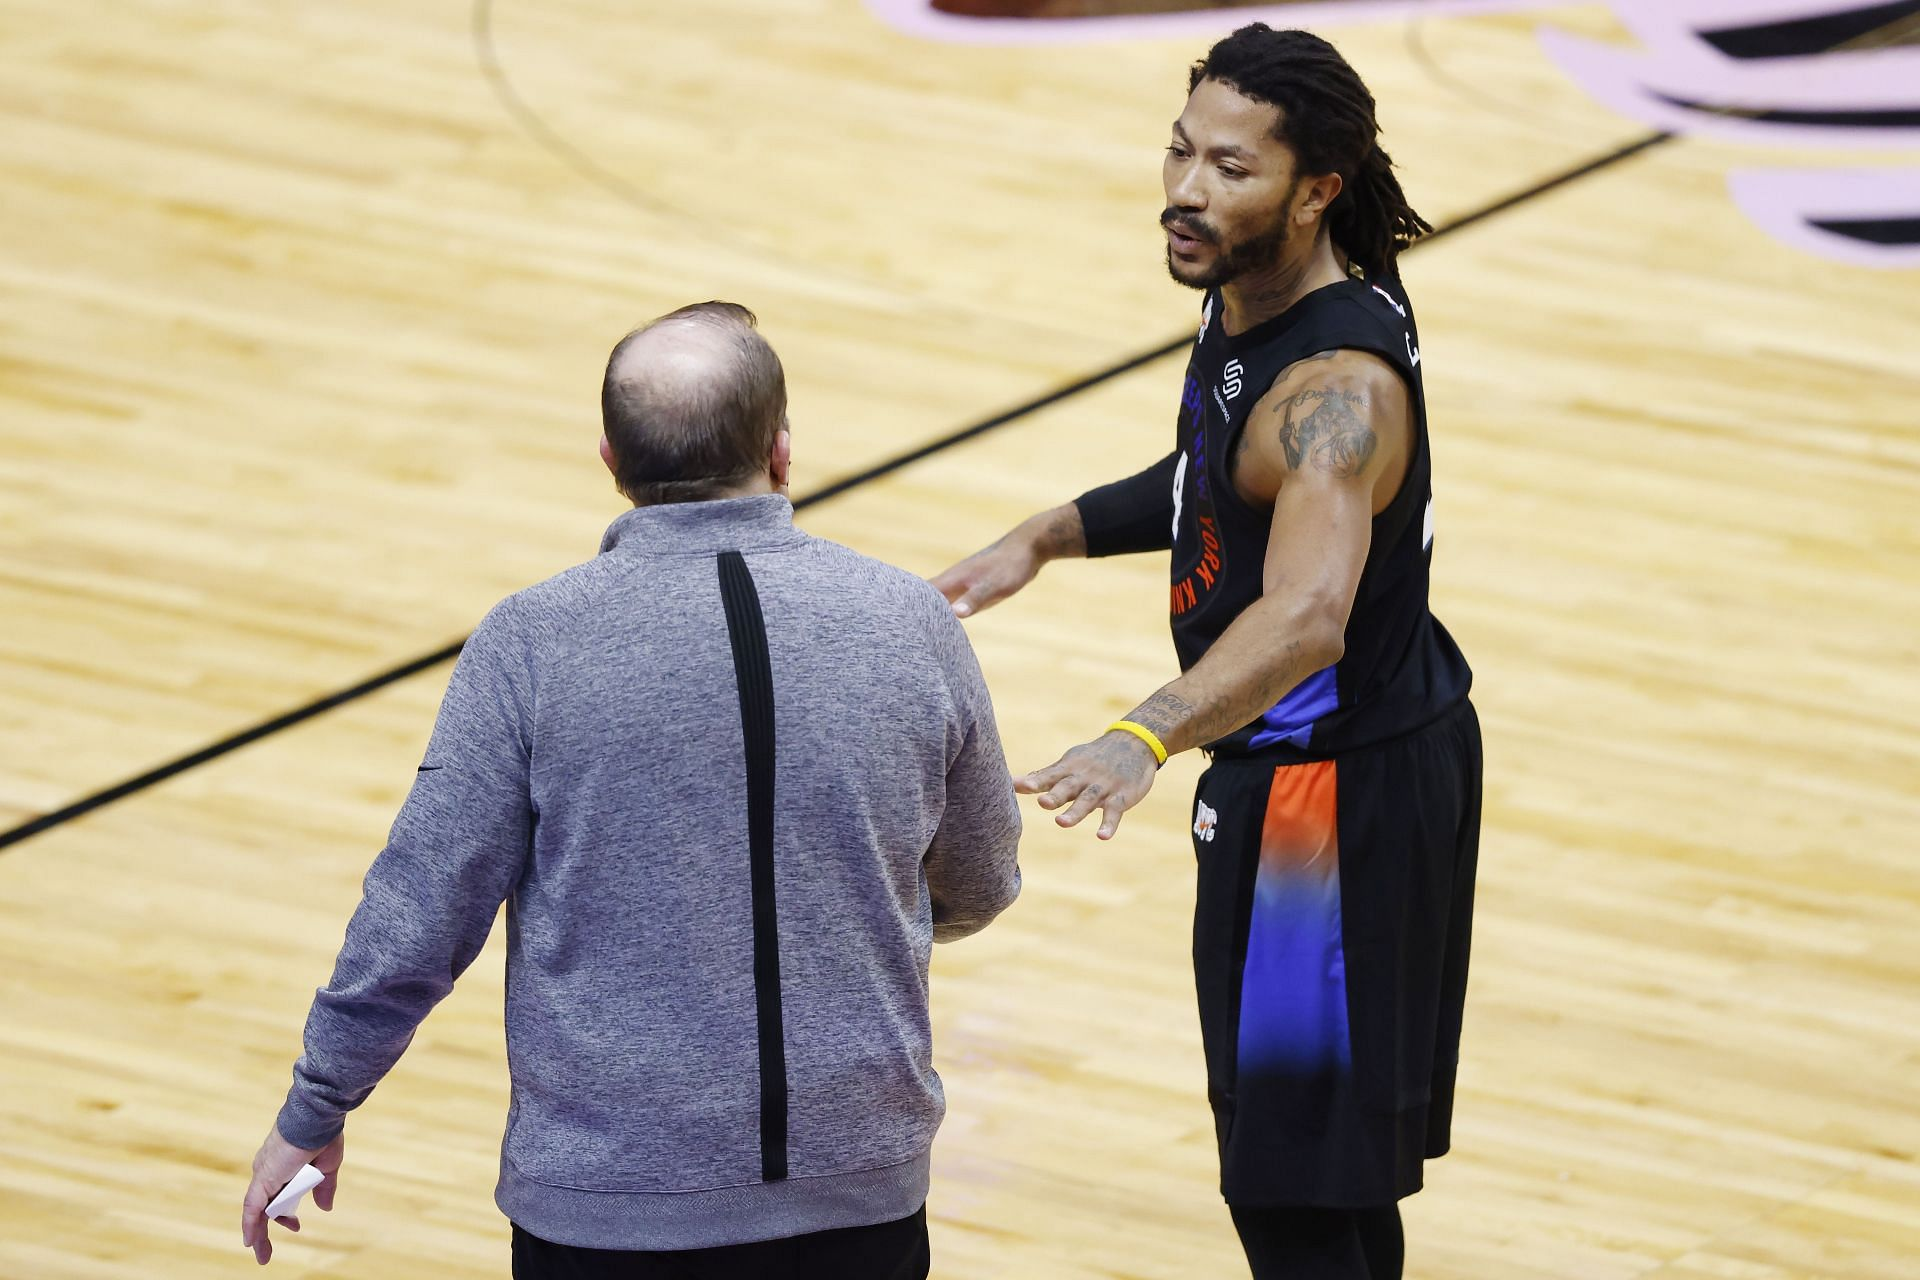 Derrick Rose getting instructions from head coach Tom Thibodeau